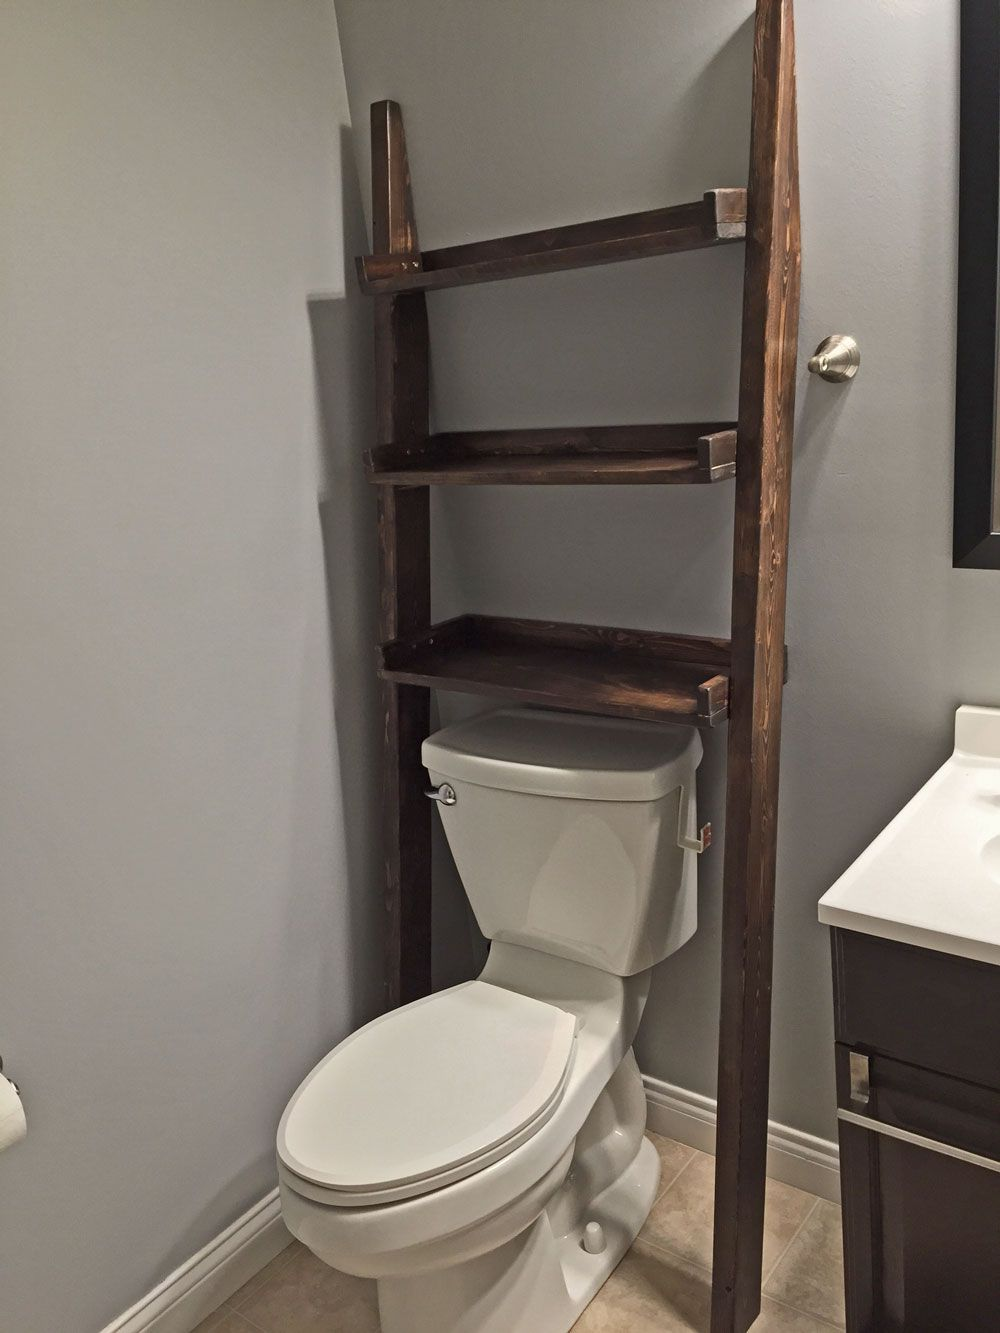 Leaning Bathroom Ladder Shelf Diy Projects